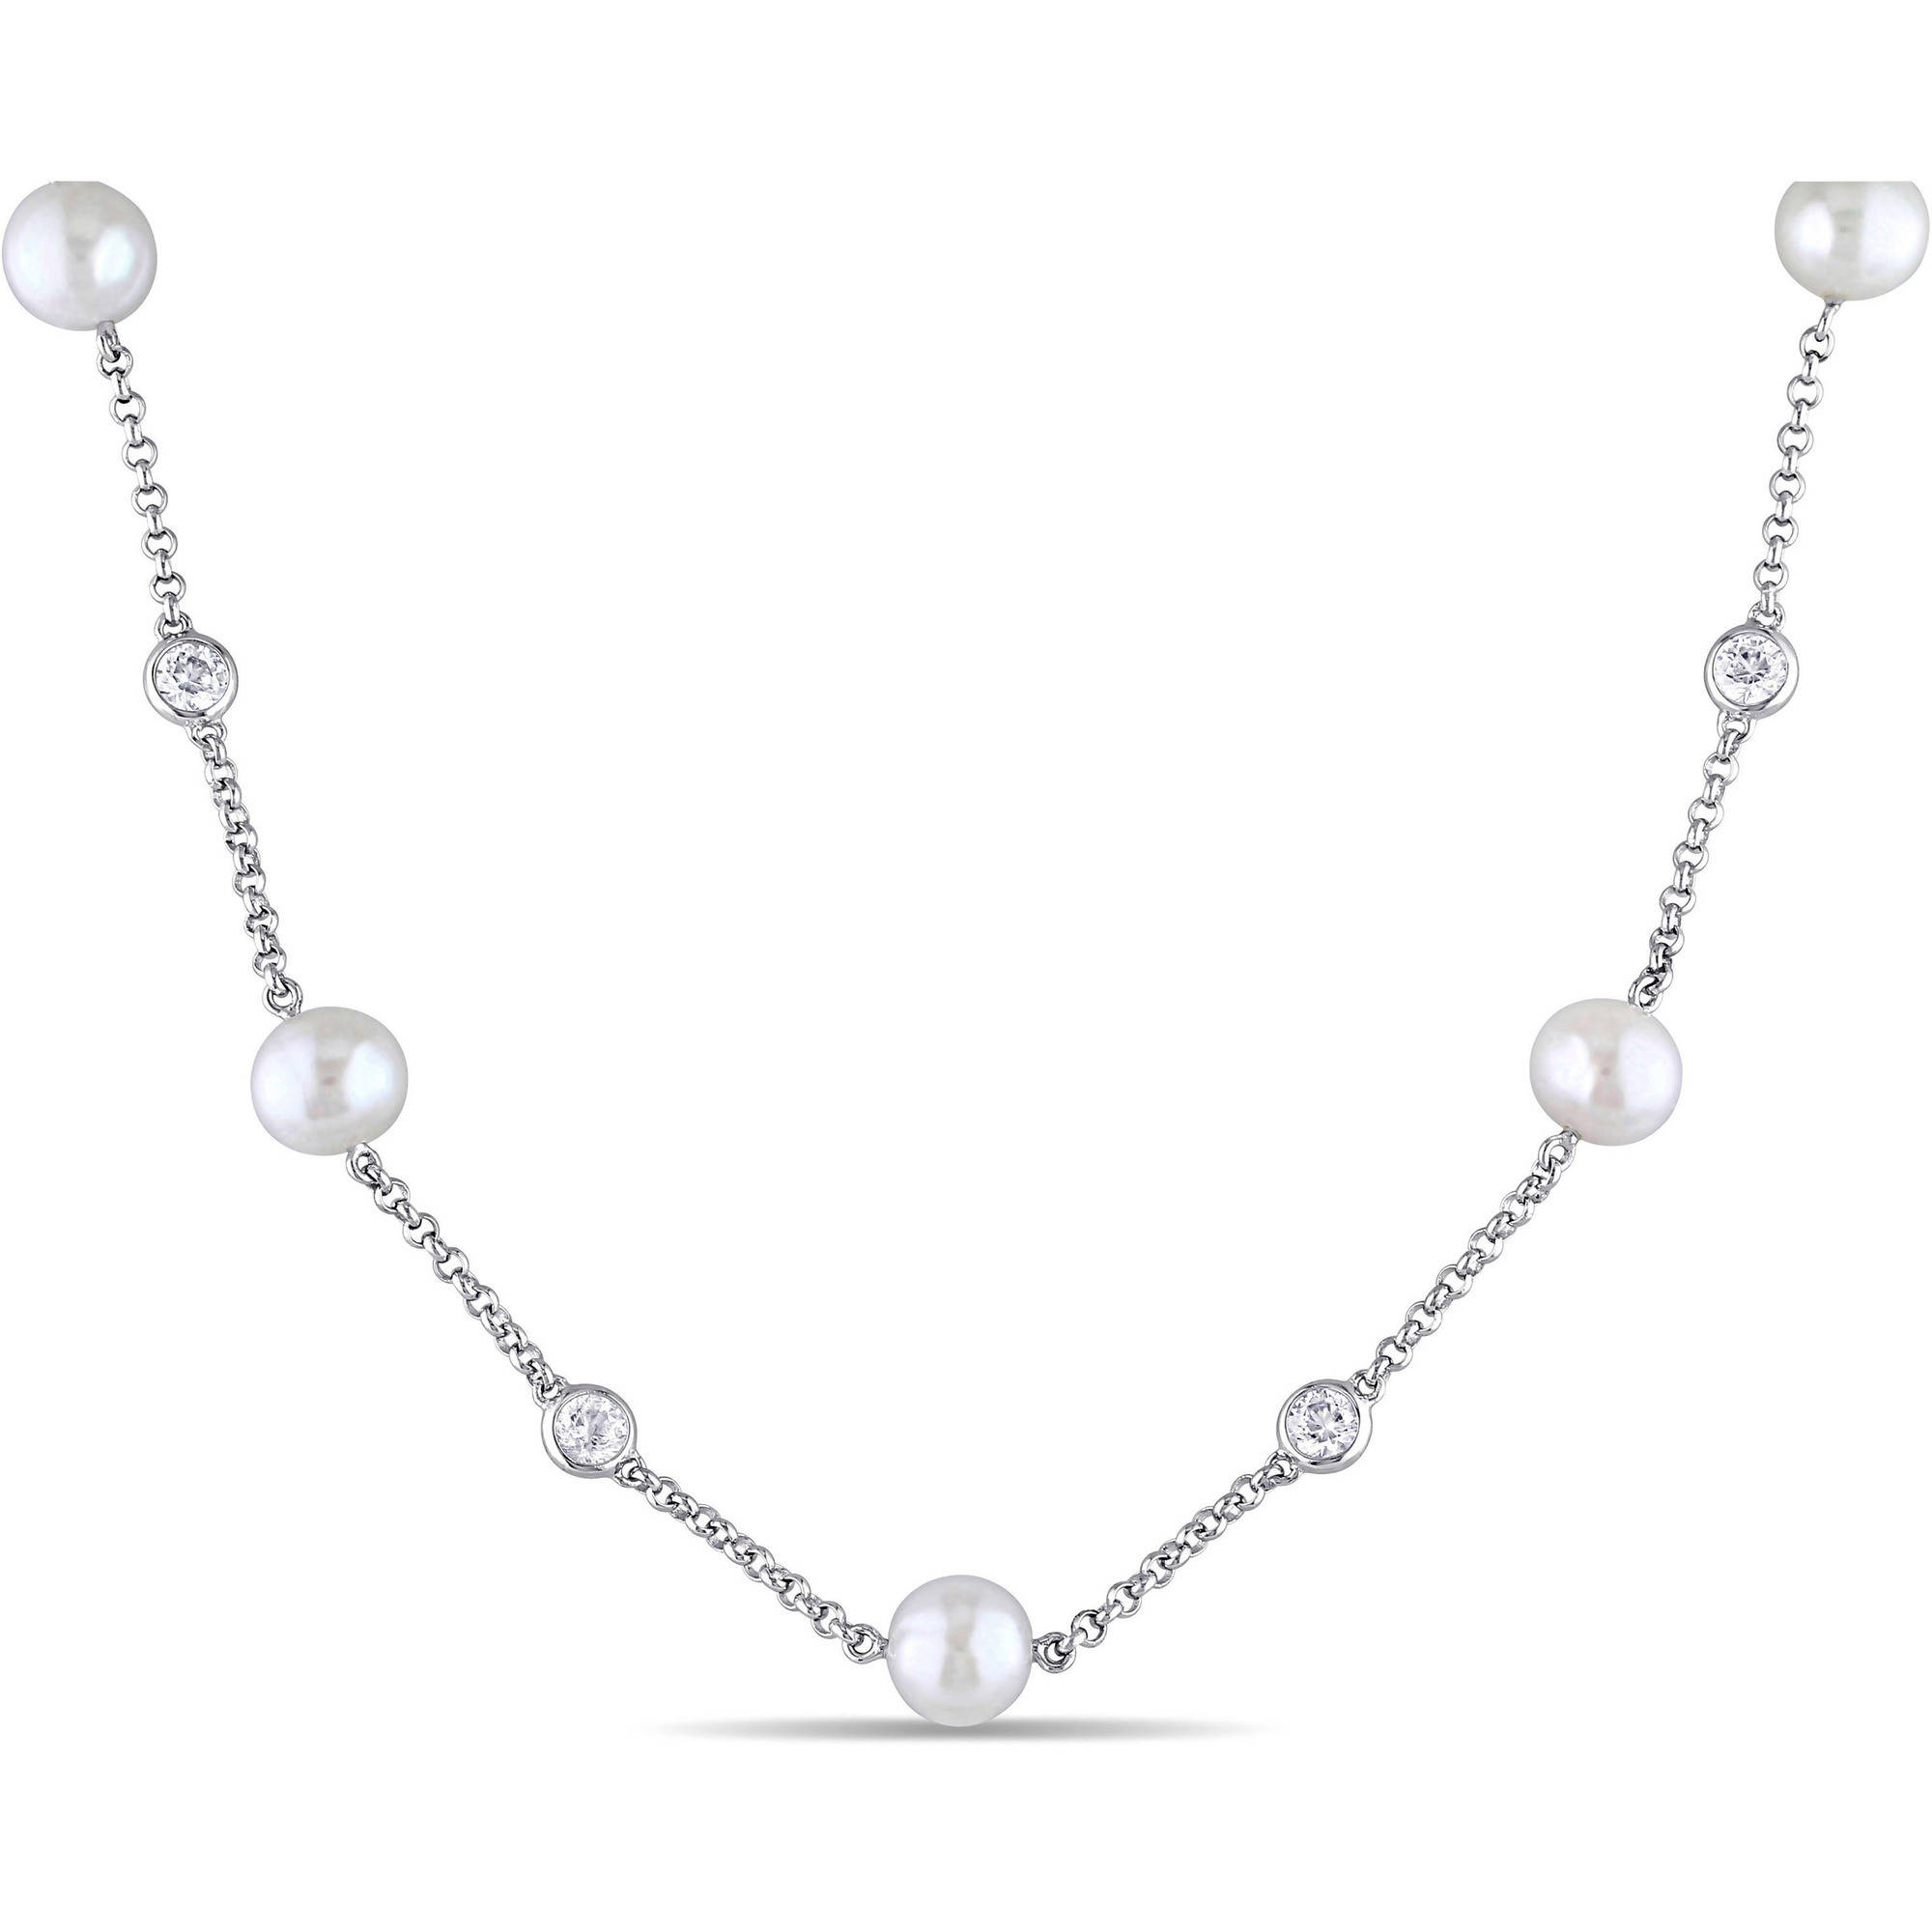 Miabella 8-8.5mm White Cultured Freshwater Pearl and 2-3 5 Carat T.G.W. Created White Sapphire Sterling Silver Station... by Miabella